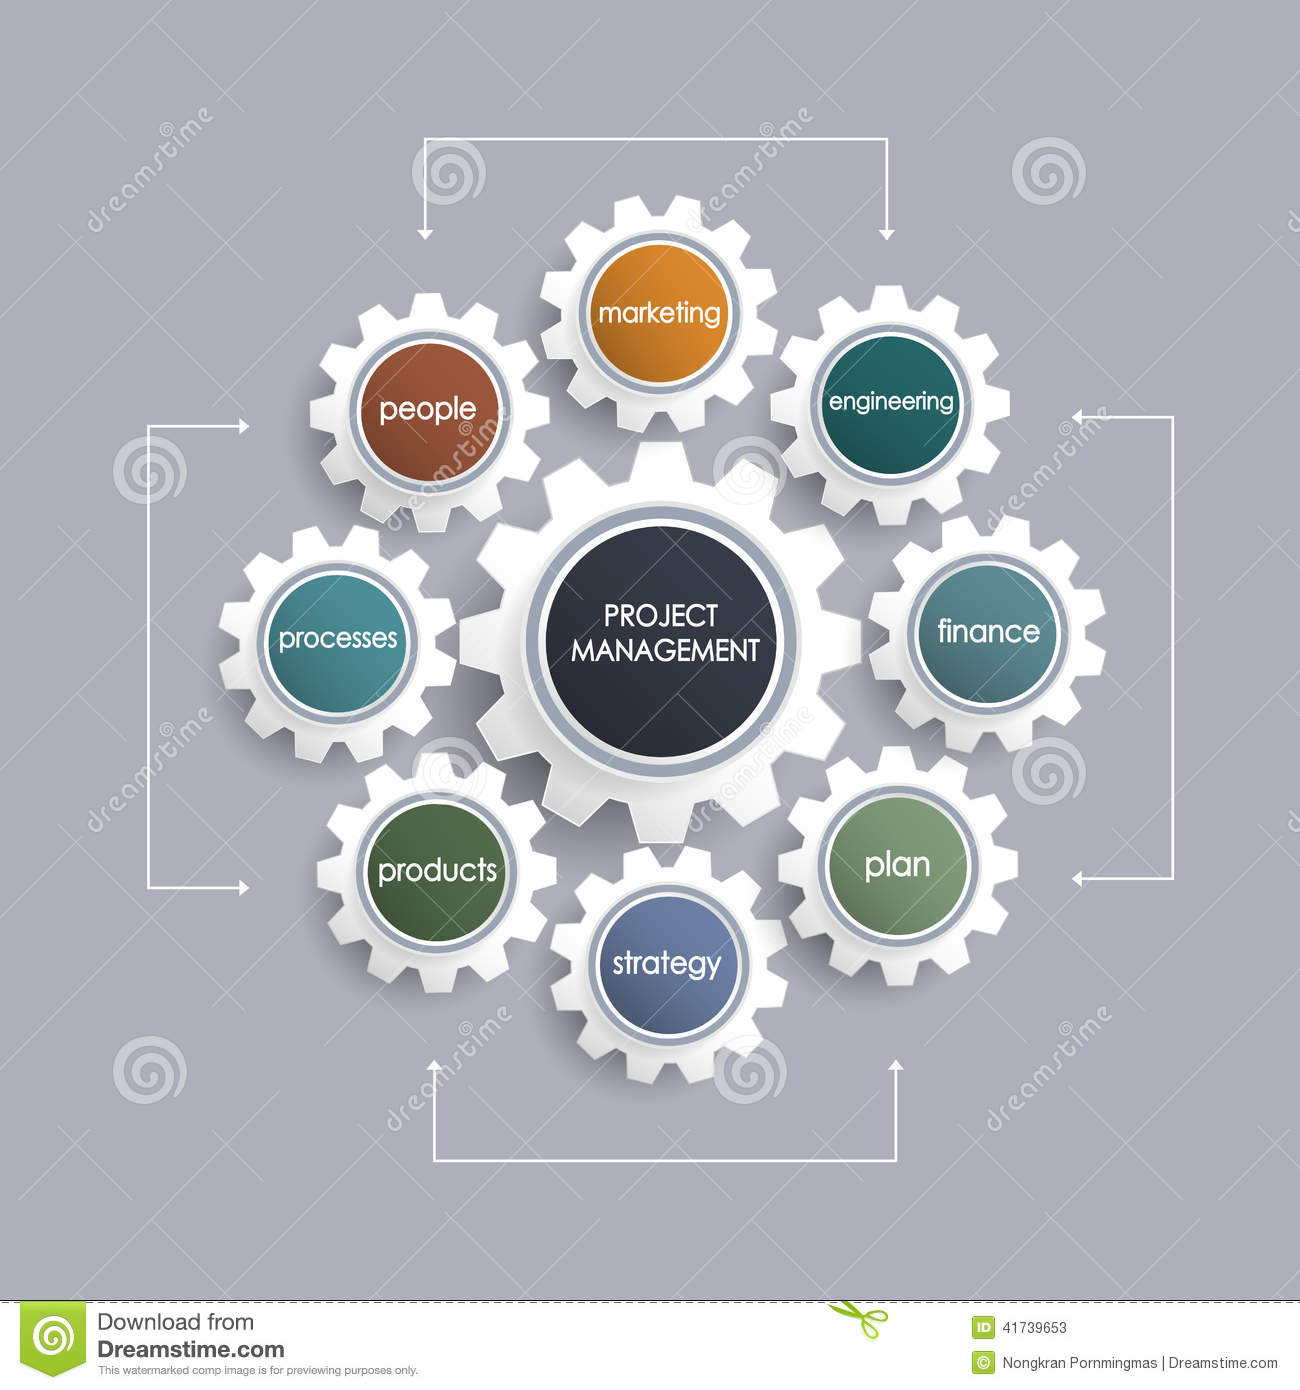 project on marketing Marketing assignment help with more than 80 degrees in marketing to pursue and over 100 institutions offering marketing courses in australia, the potential students willing to pave a successful career-path in this particular domain will certainly look forward to carry on with an academic session that yields good result.